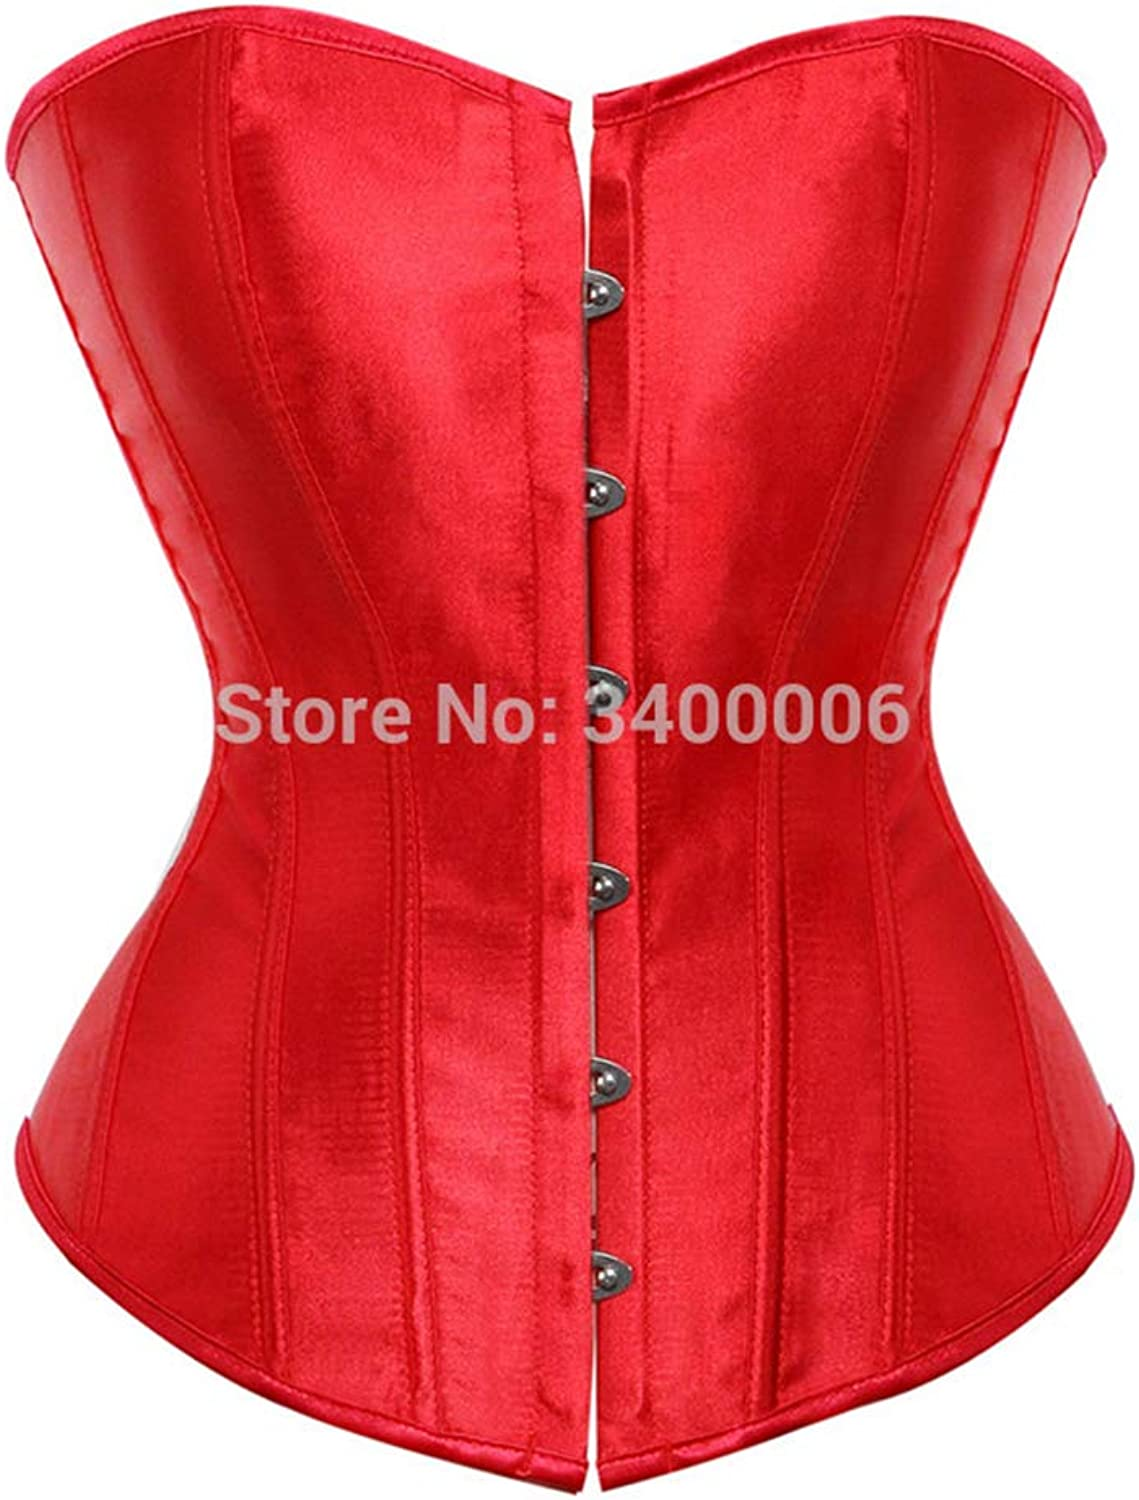 Satin Sexy Bustier Top Vintage Lace up Boned Corset Overbust Brocade